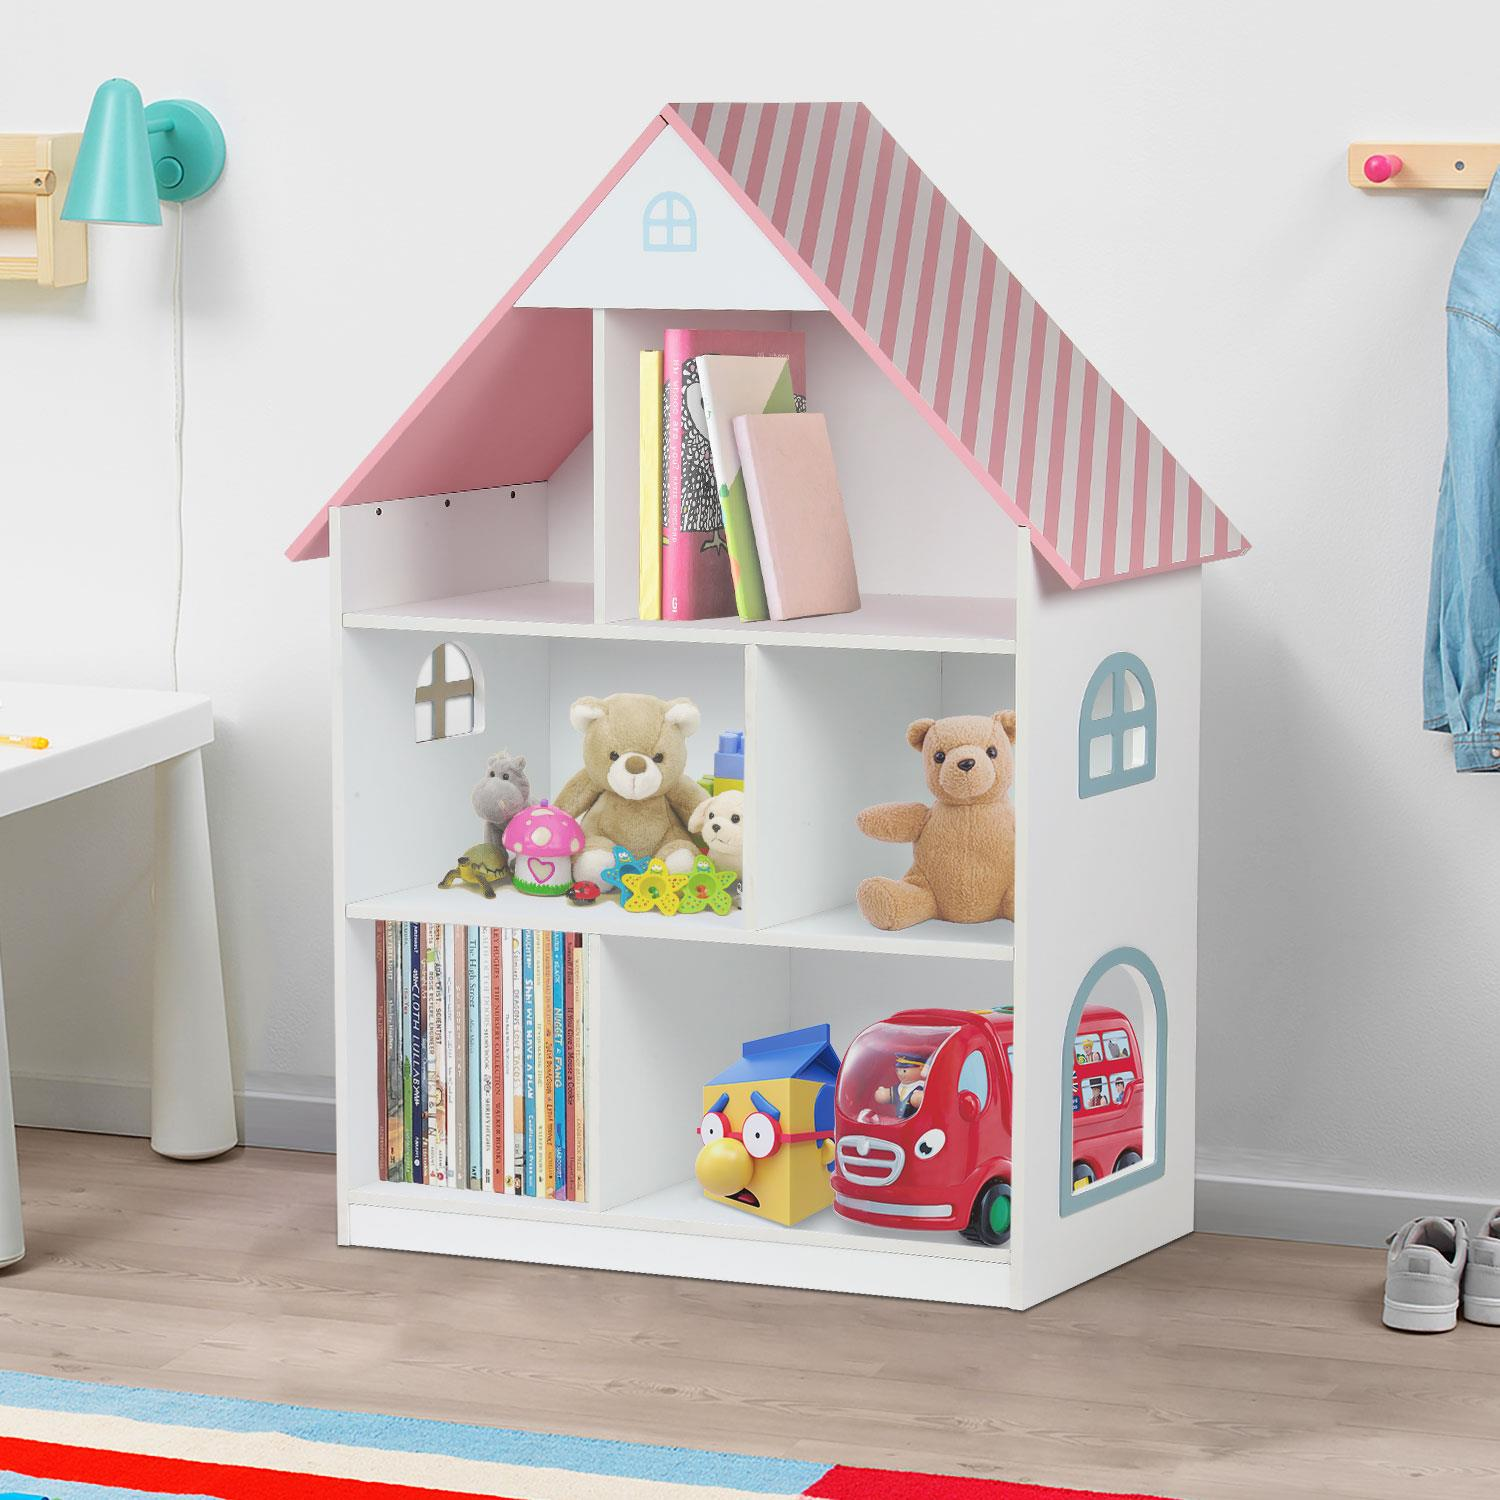 Details About Kids Childrens Wooden Doll House Bookcase Shelf Storage Rack Organiser Bookshelf